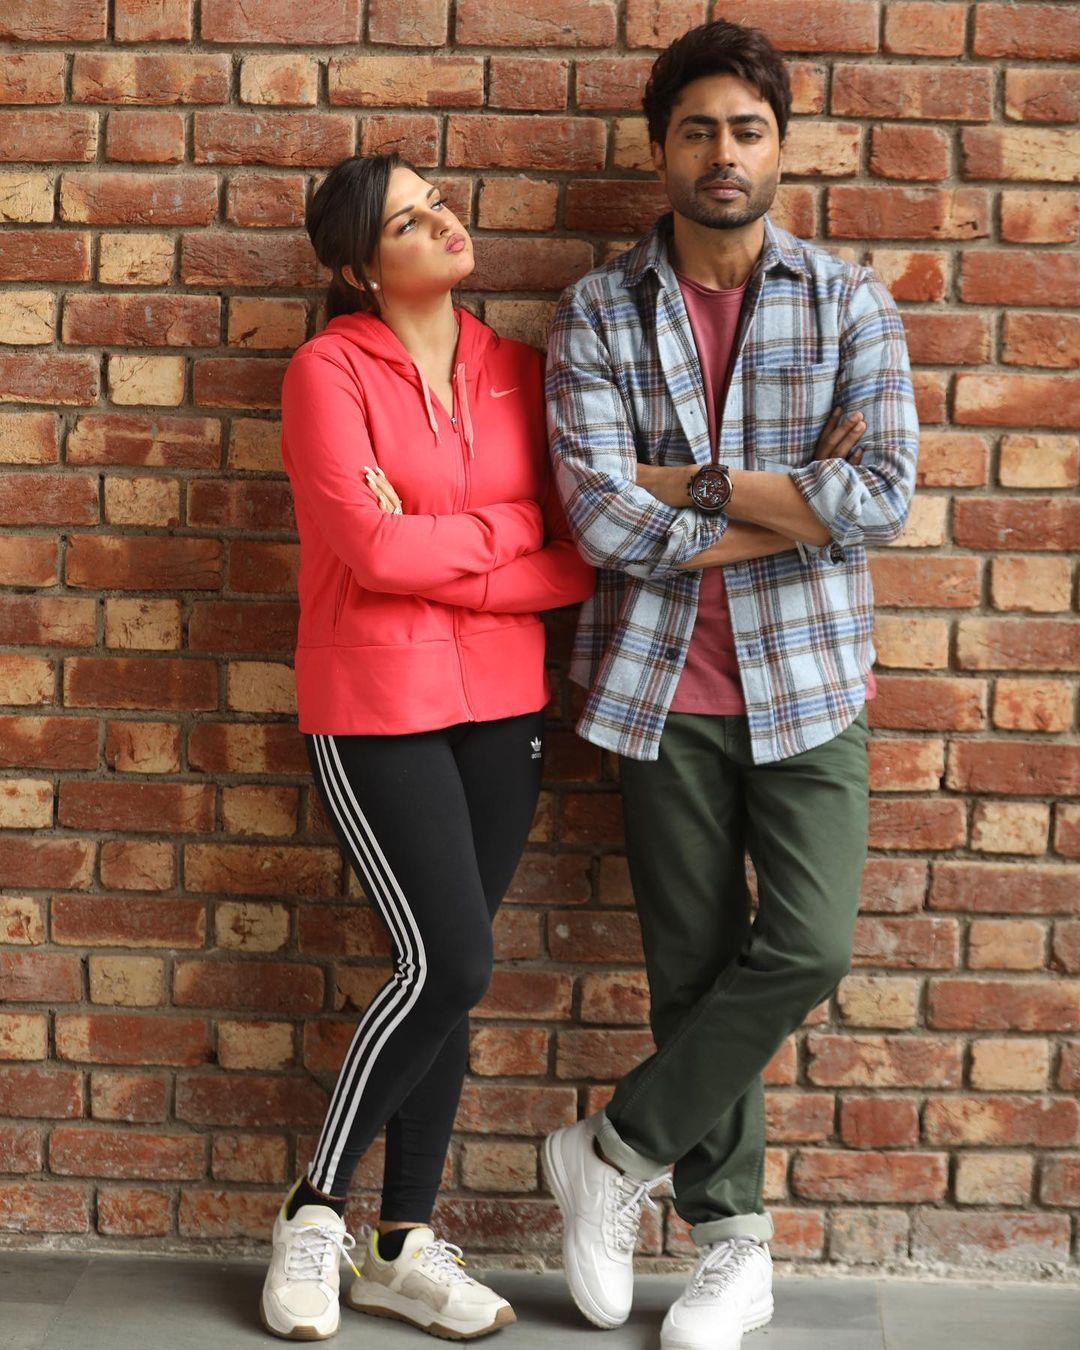 Singer Nishawn Bhullar has come up with a soft romantic number, Zyada Vadia